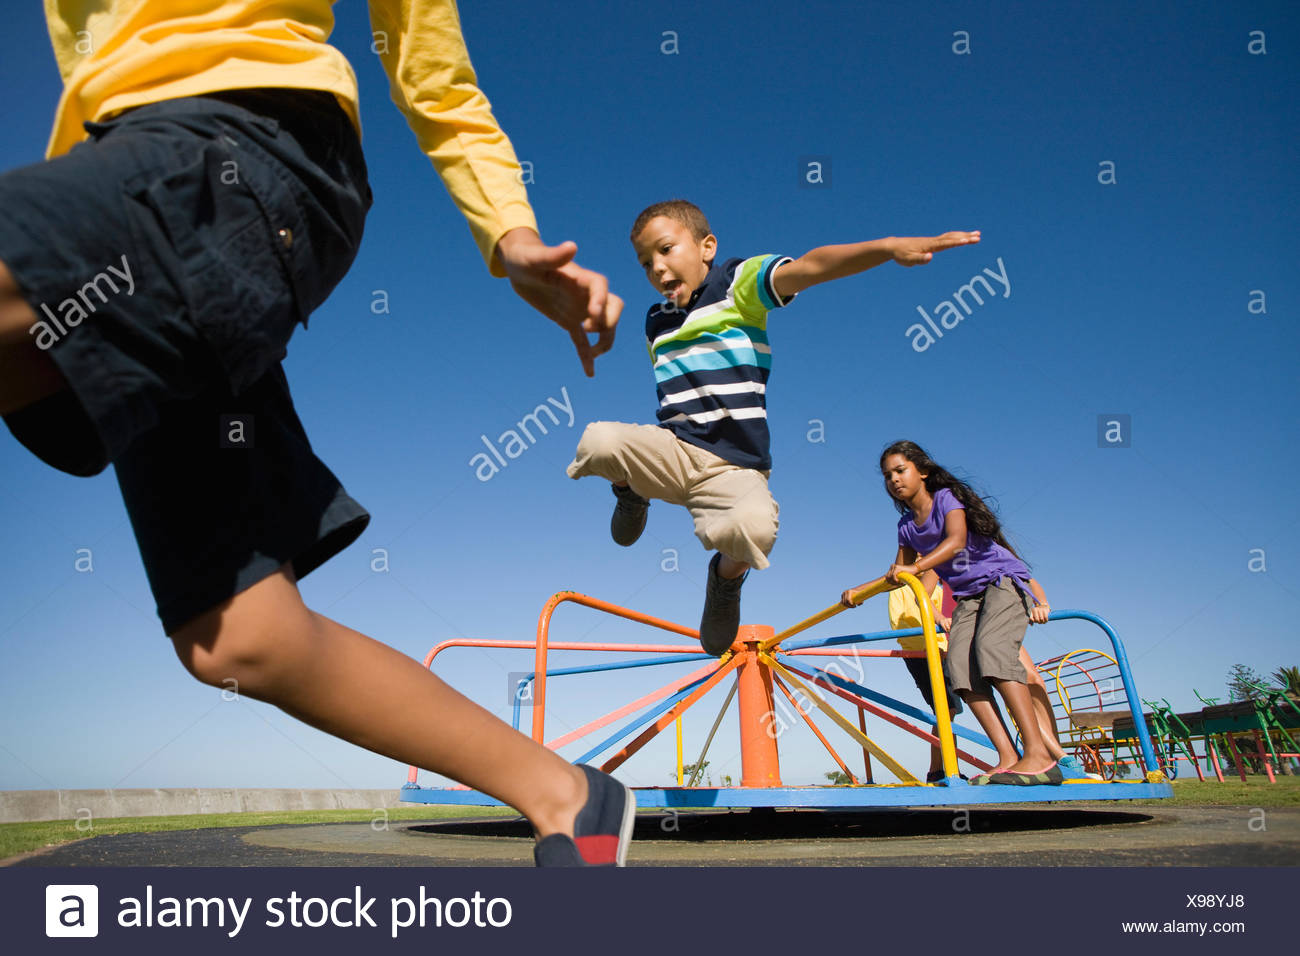 Children jumping off merry-go-round at playground - Stock Image